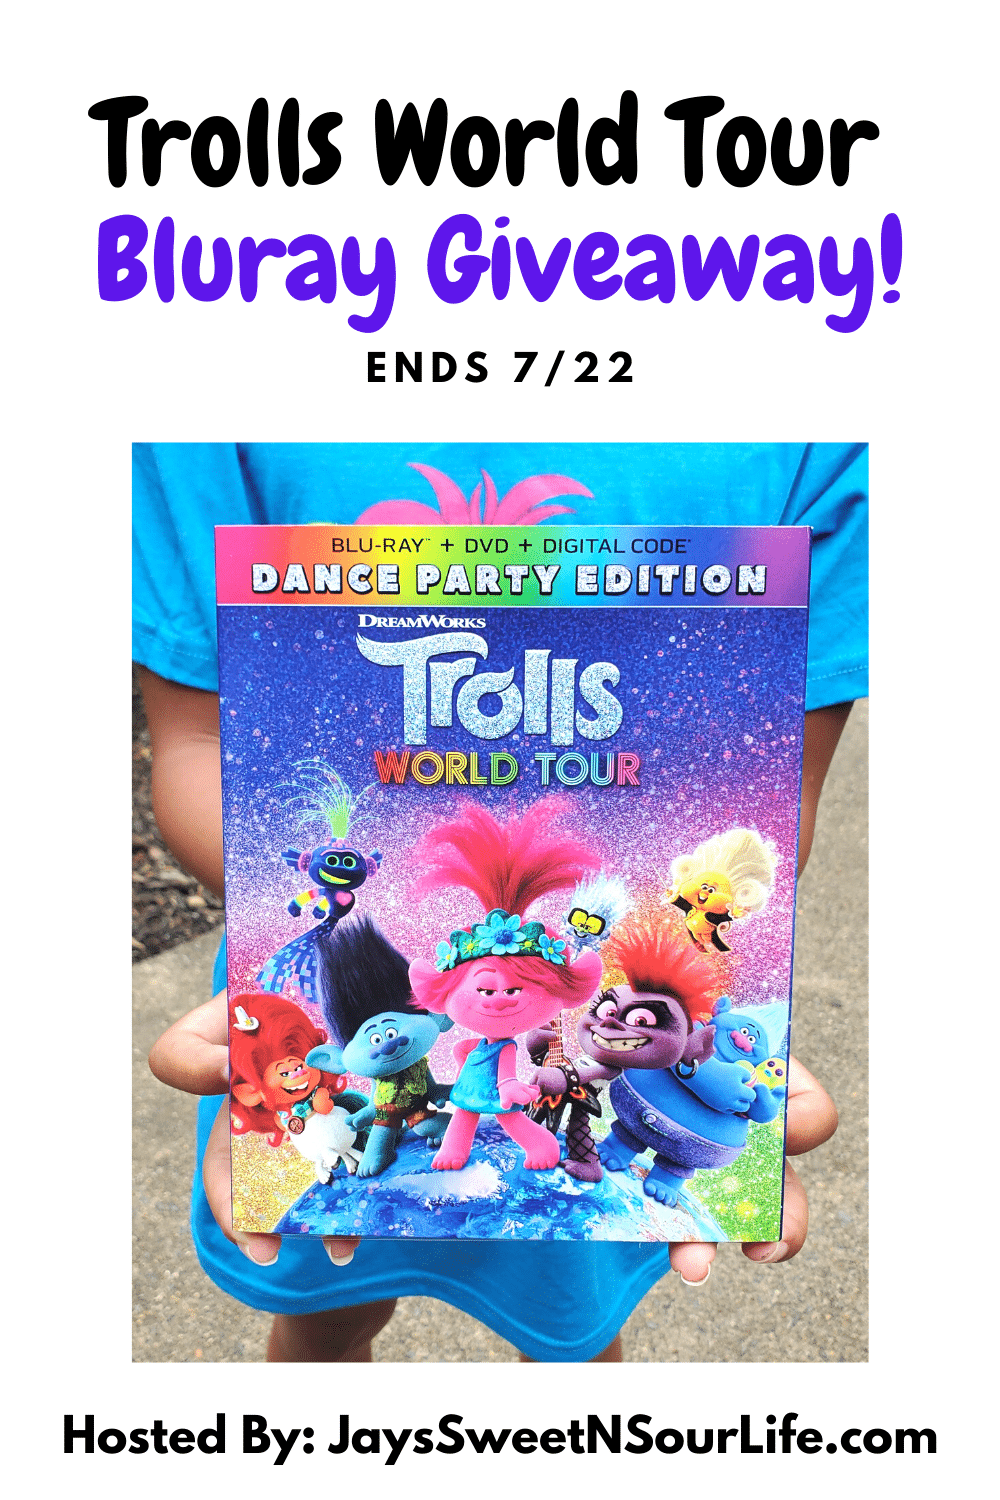 Join Poppy, Branch, and the rest of the Trolls in the all-new Dance Party Edition. Enter to win your very own copy in my Trolls World Tour Bluray Giveaway! Giveaway ends 7/22.